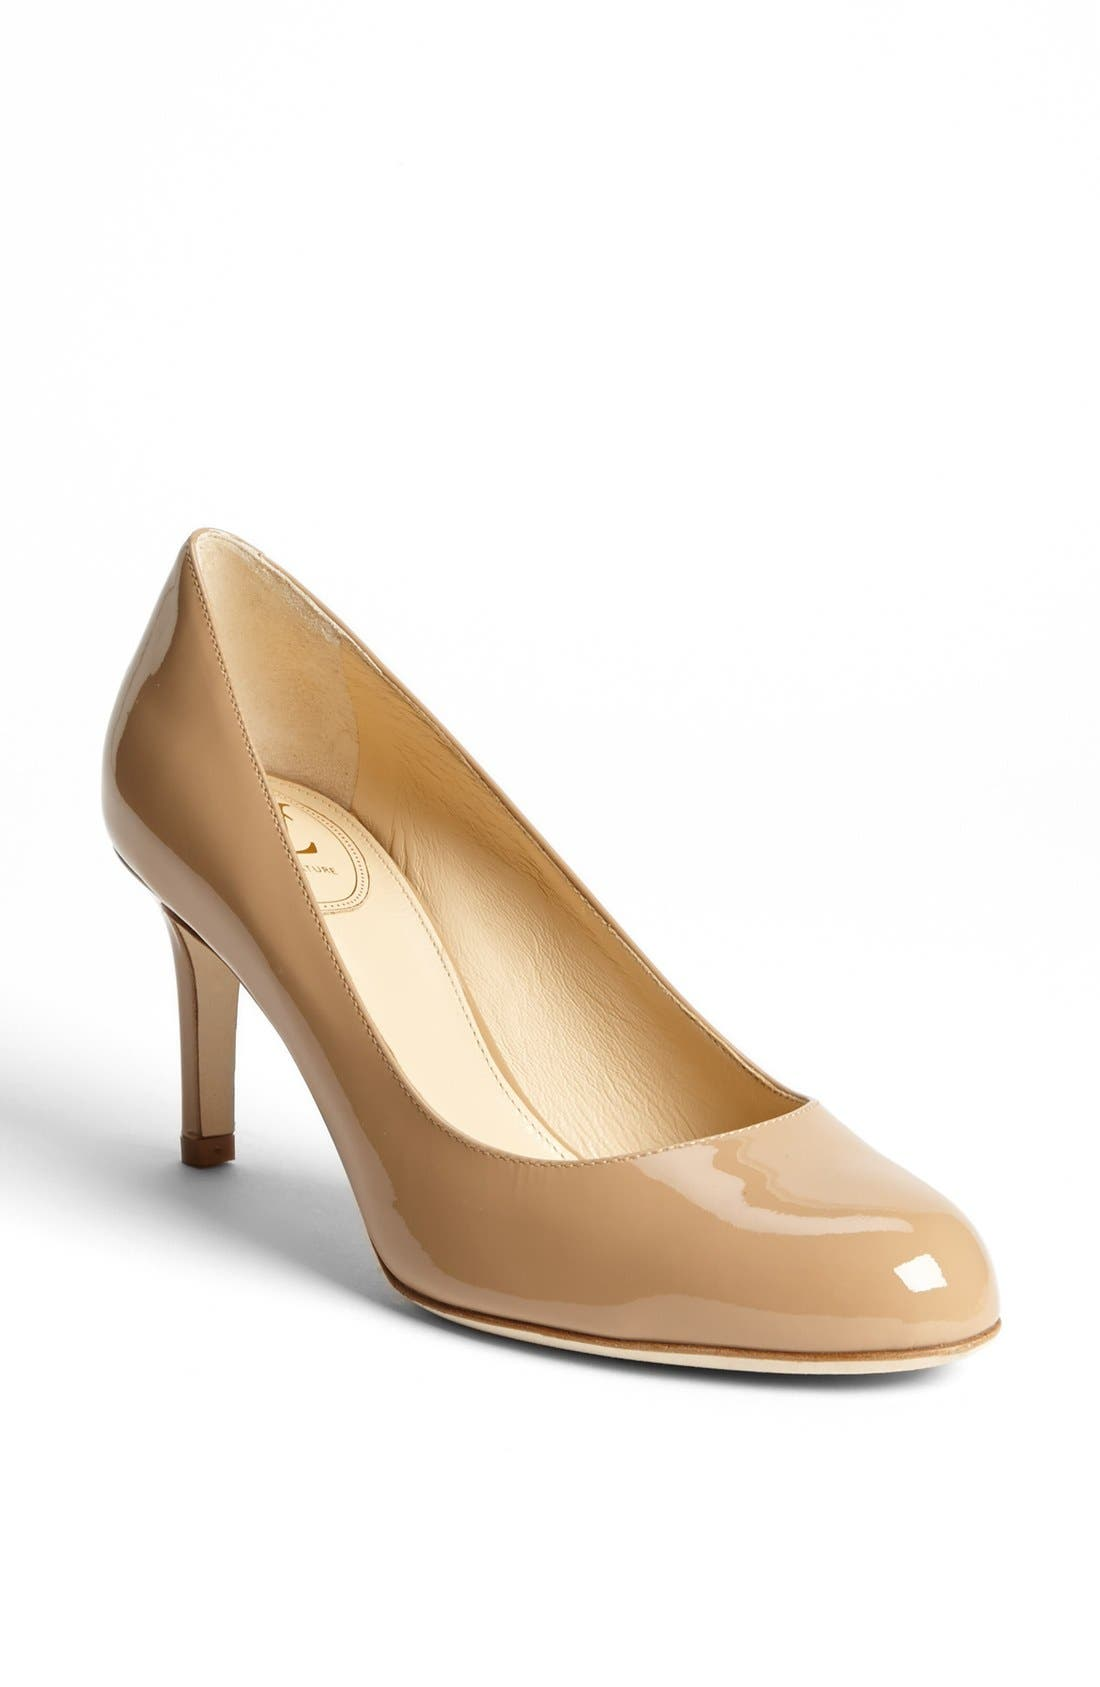 Main Image - VC Signature 'Shelley' Pump